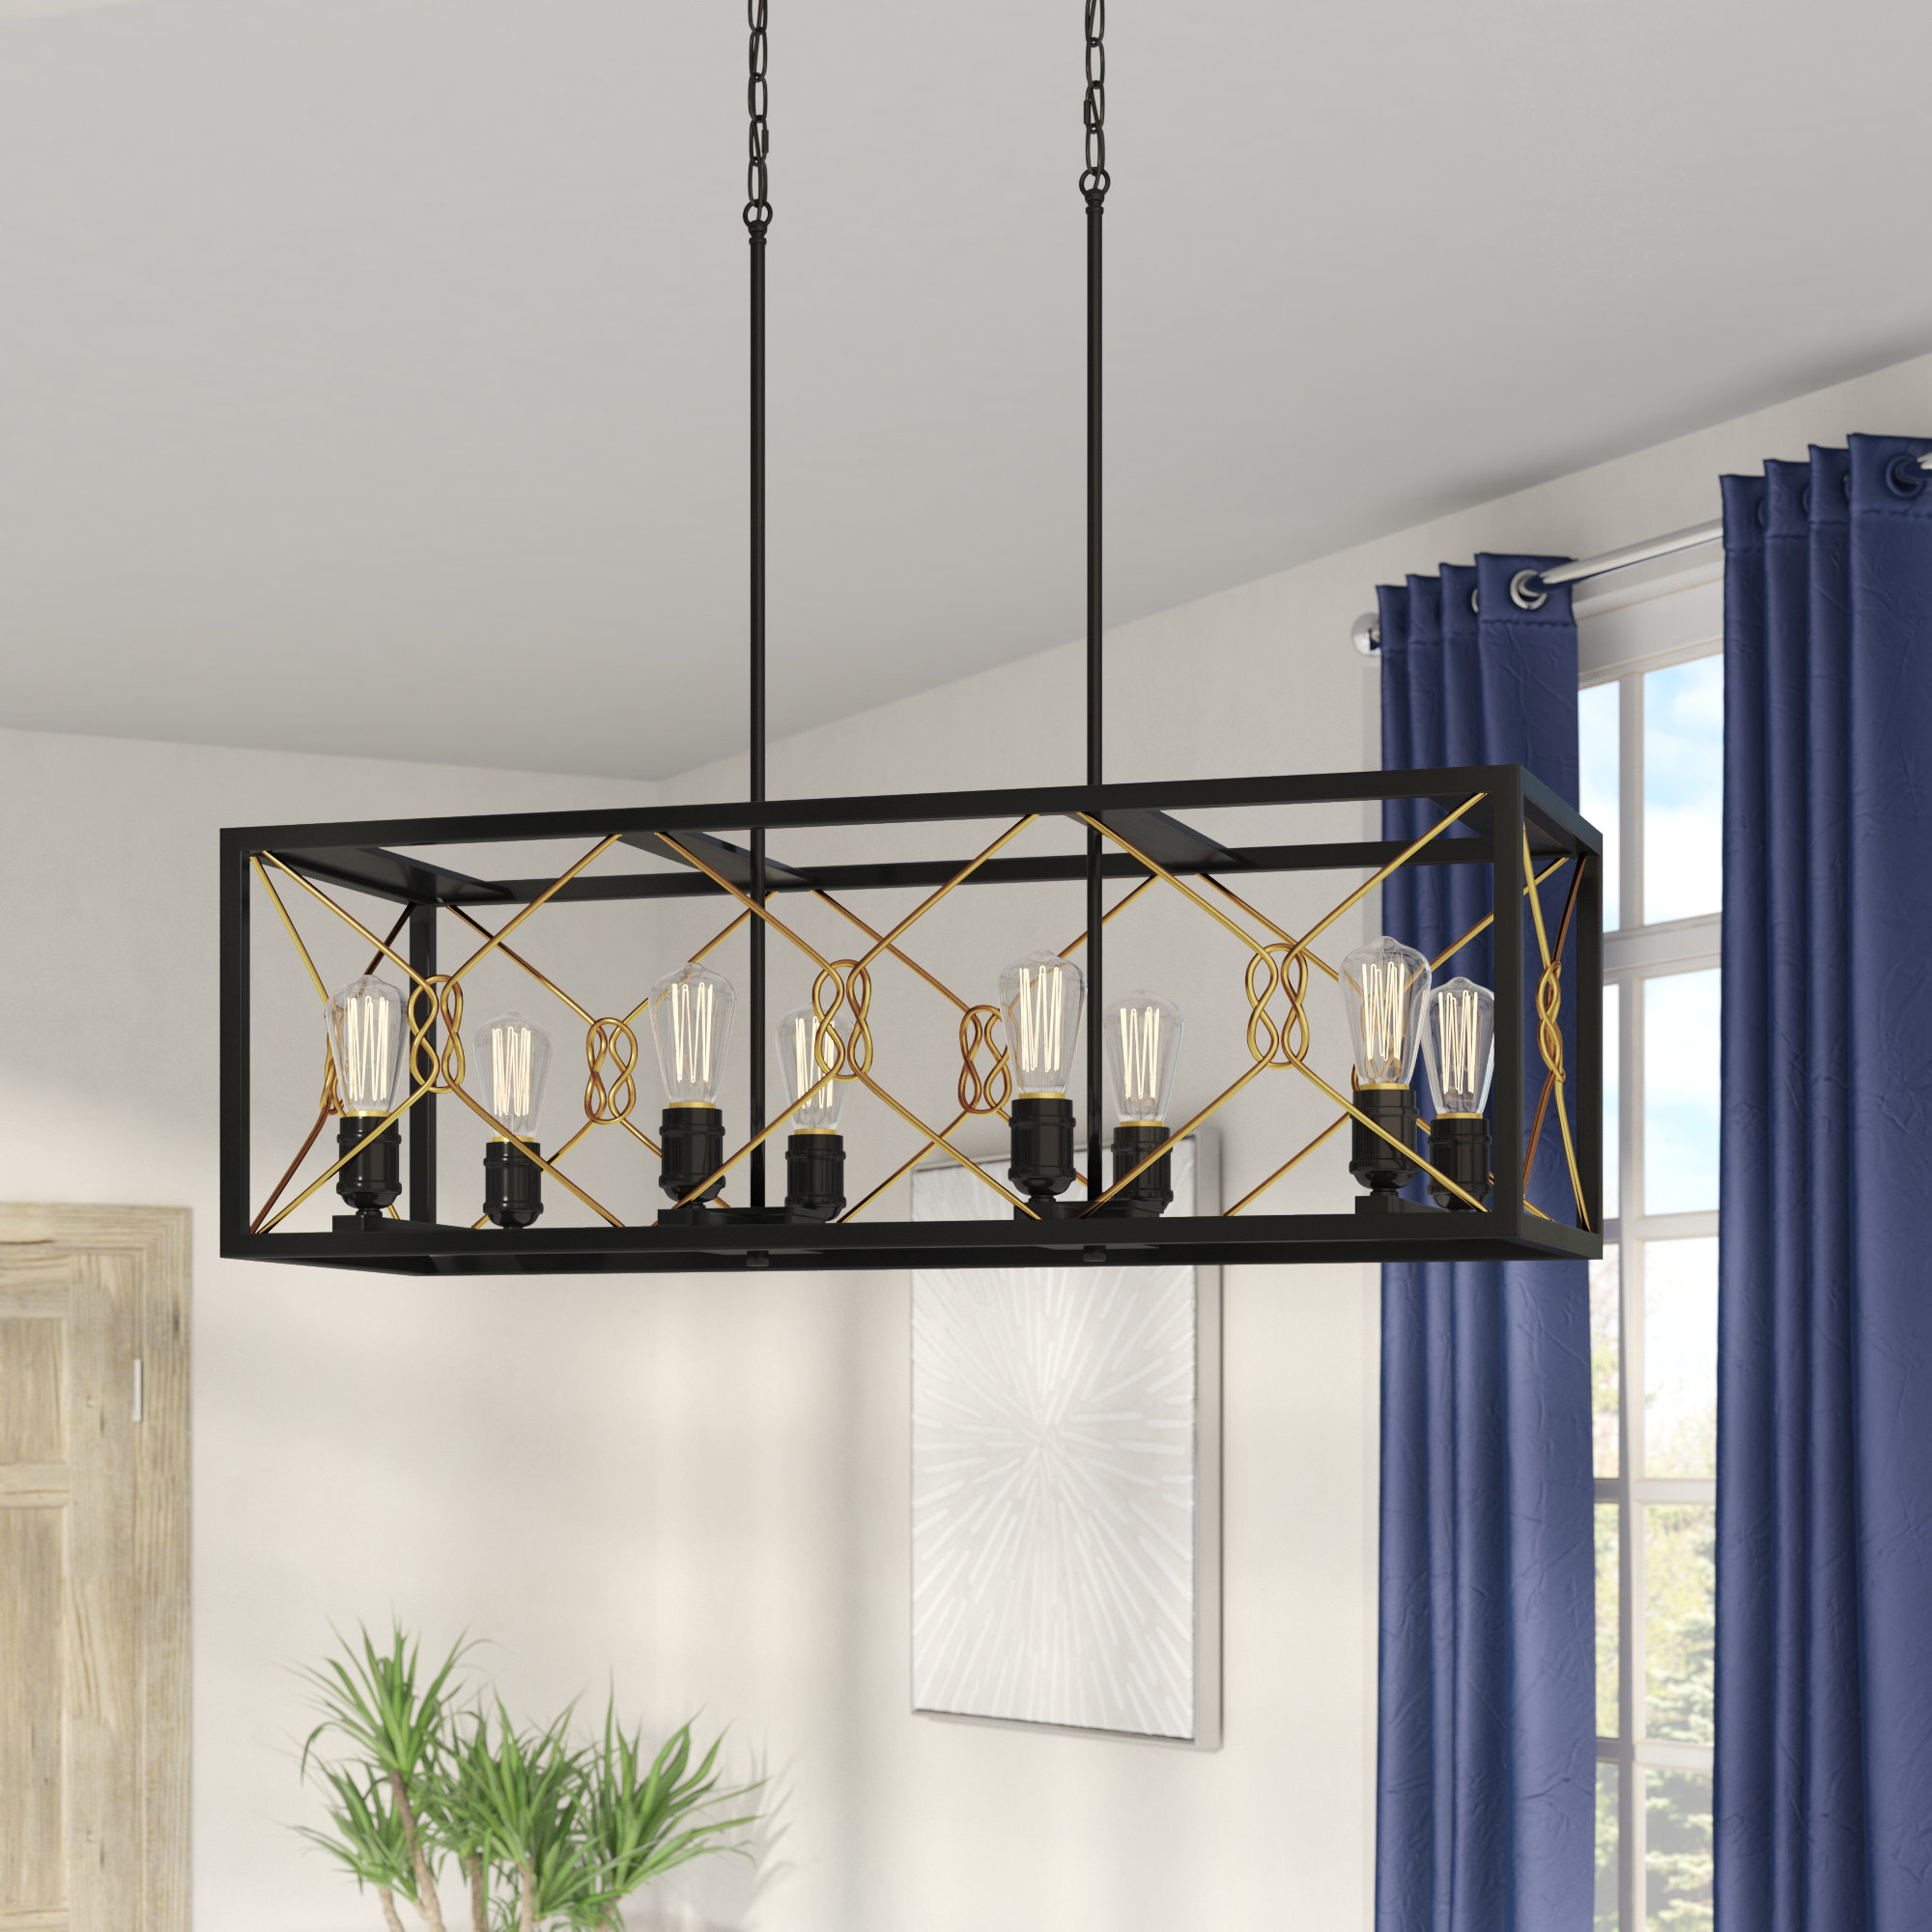 Hewitt 4 Light Square Chandeliers In Latest Industrial Square & Rectangular Chandeliers You'll Love In (View 3 of 20)